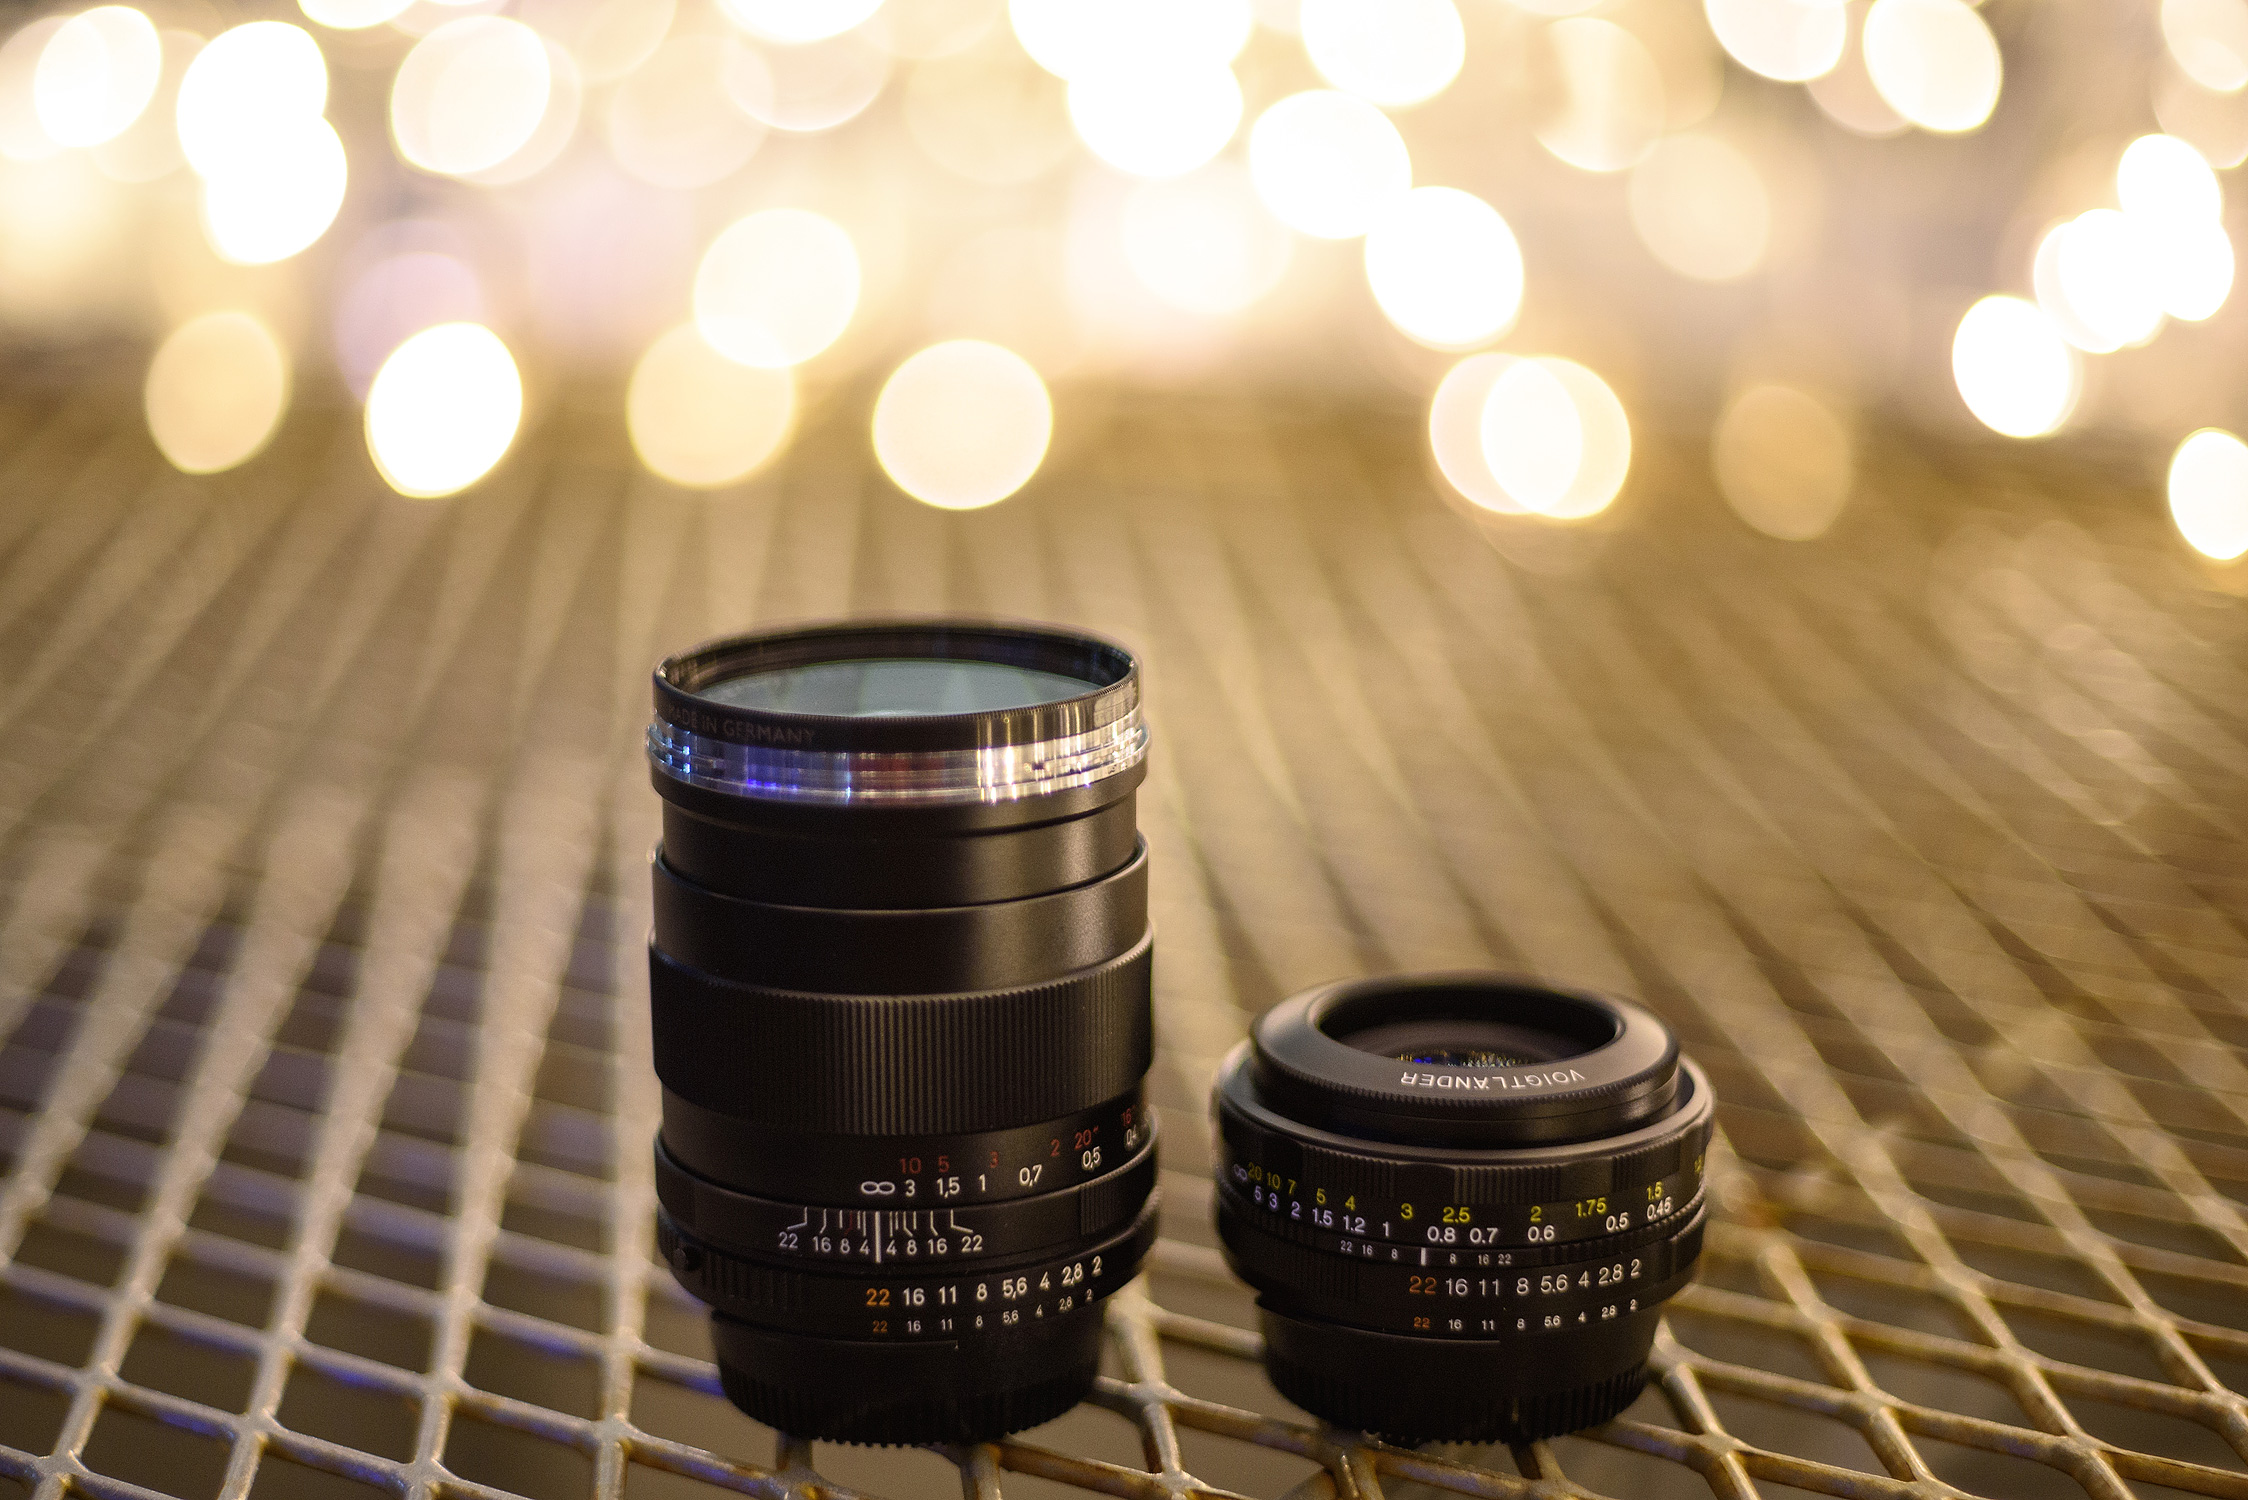 Nikkor Ai-S 50mm 1.4